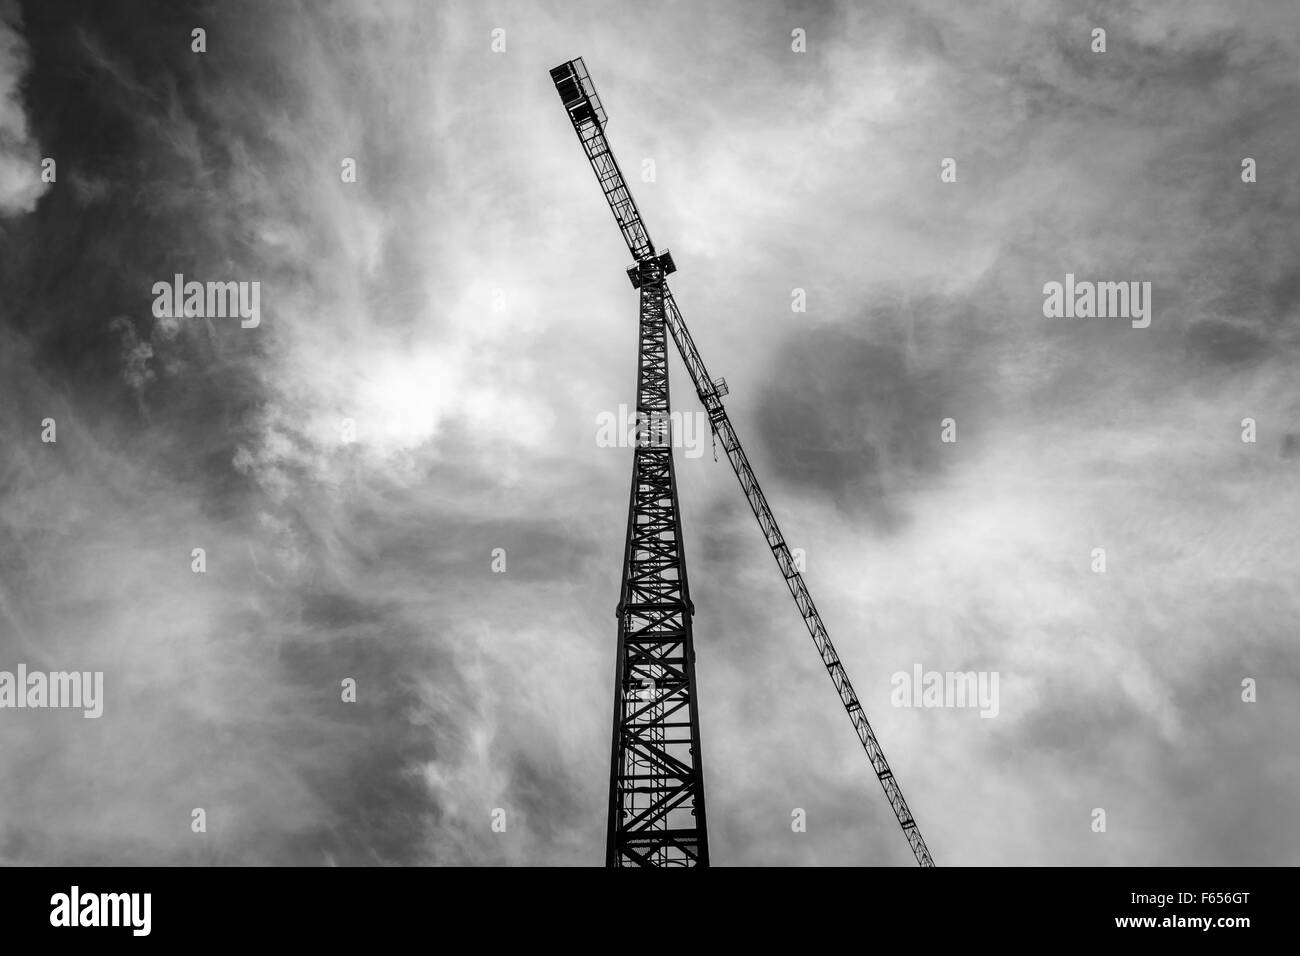 Construction Crane Under A Cloudy Sky In Black And White